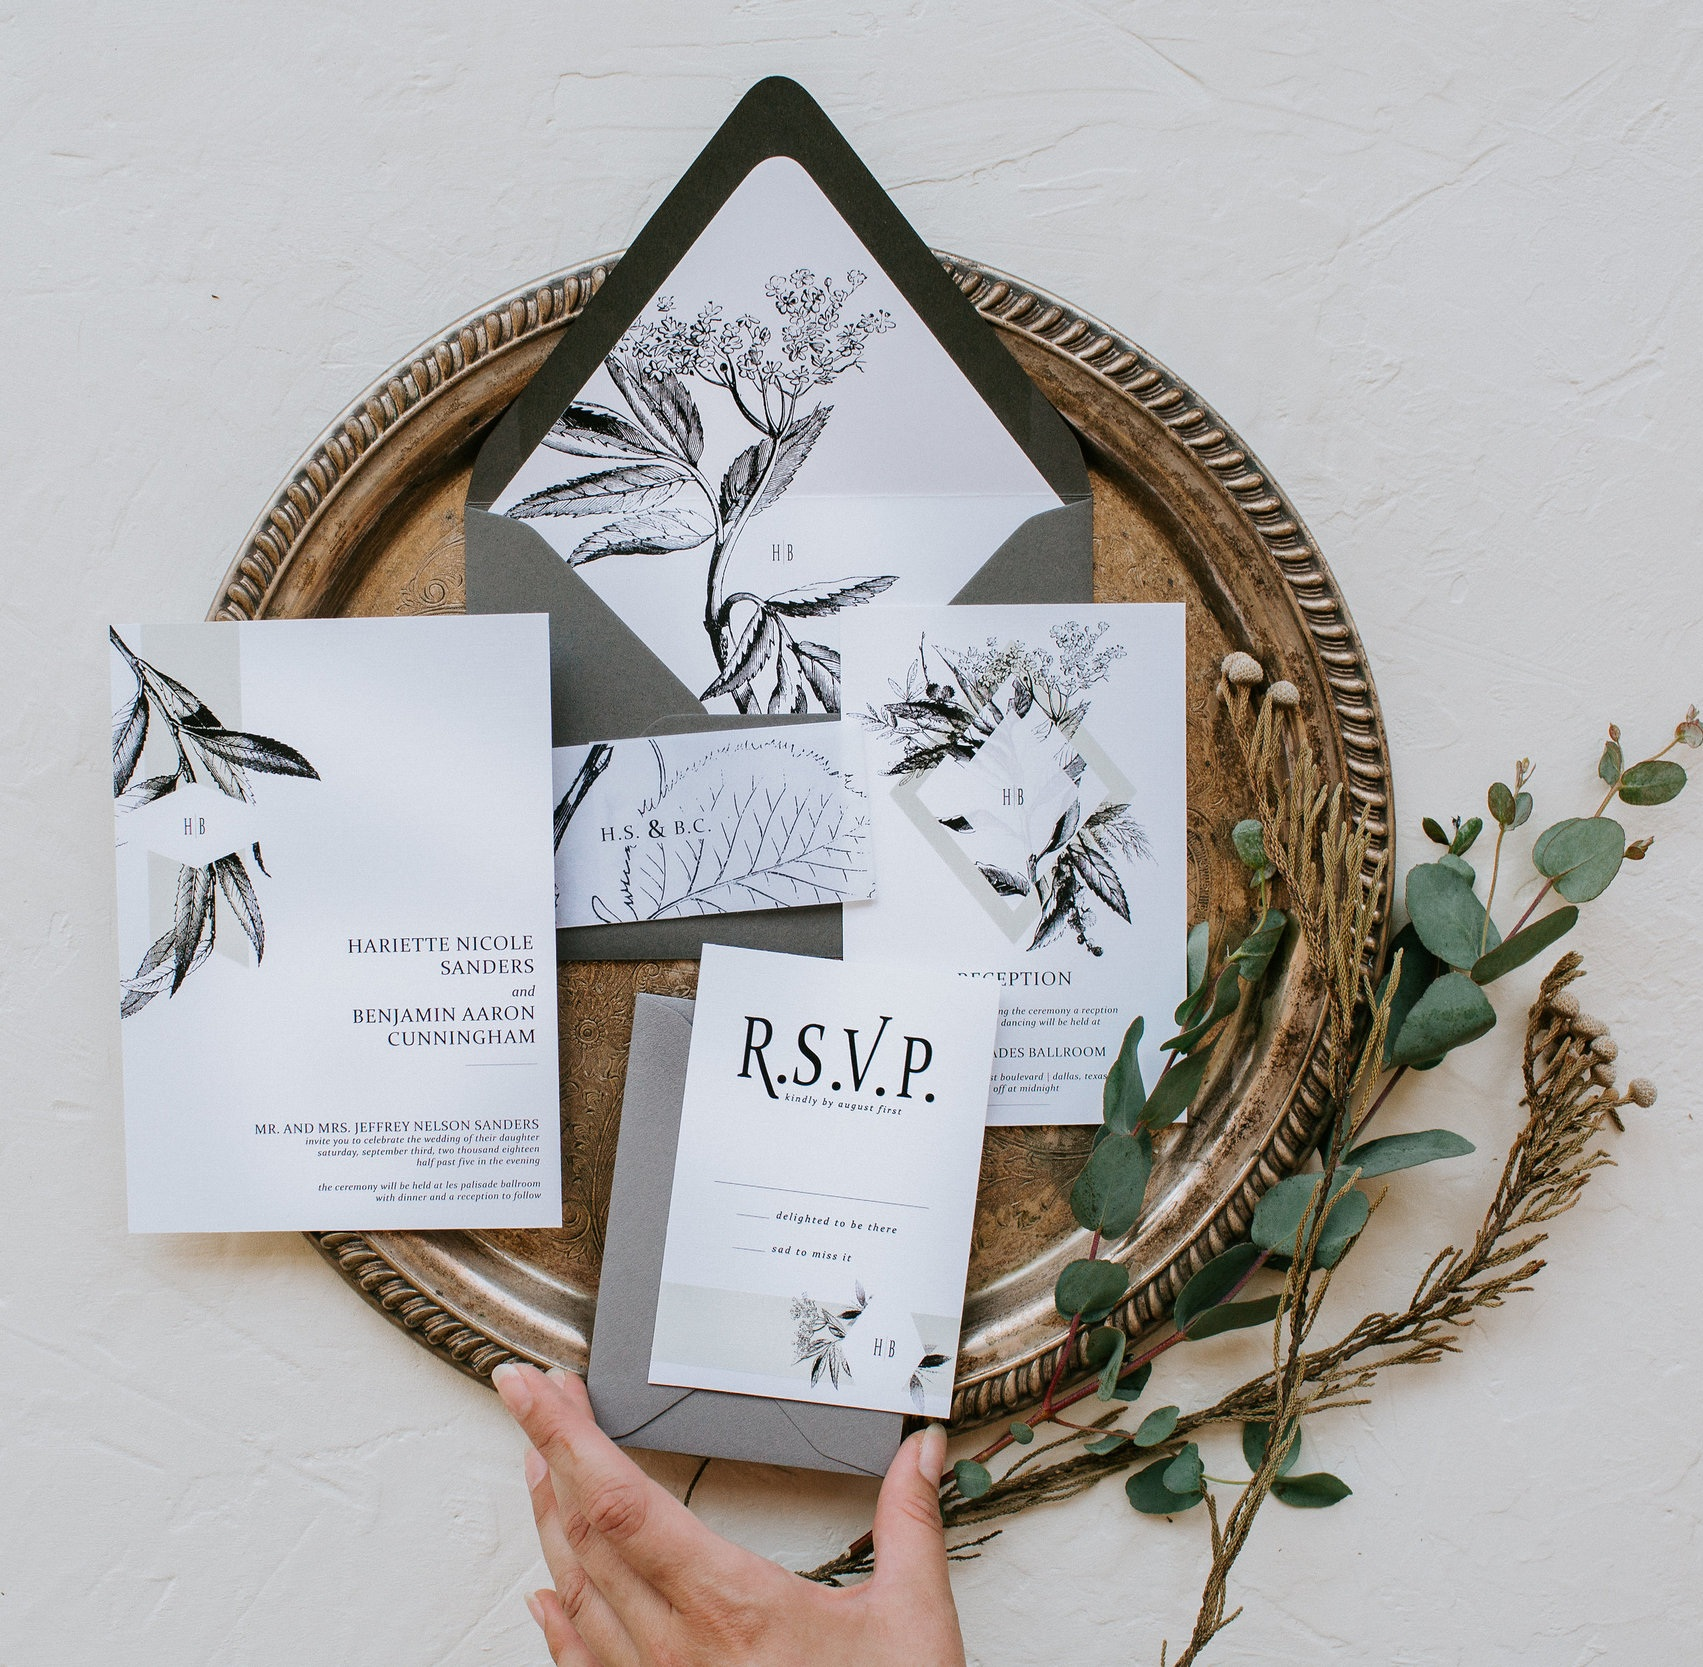 Hands of Hollis - Custom Fine Art Wedding Invitations handmade in Dallas, Texas